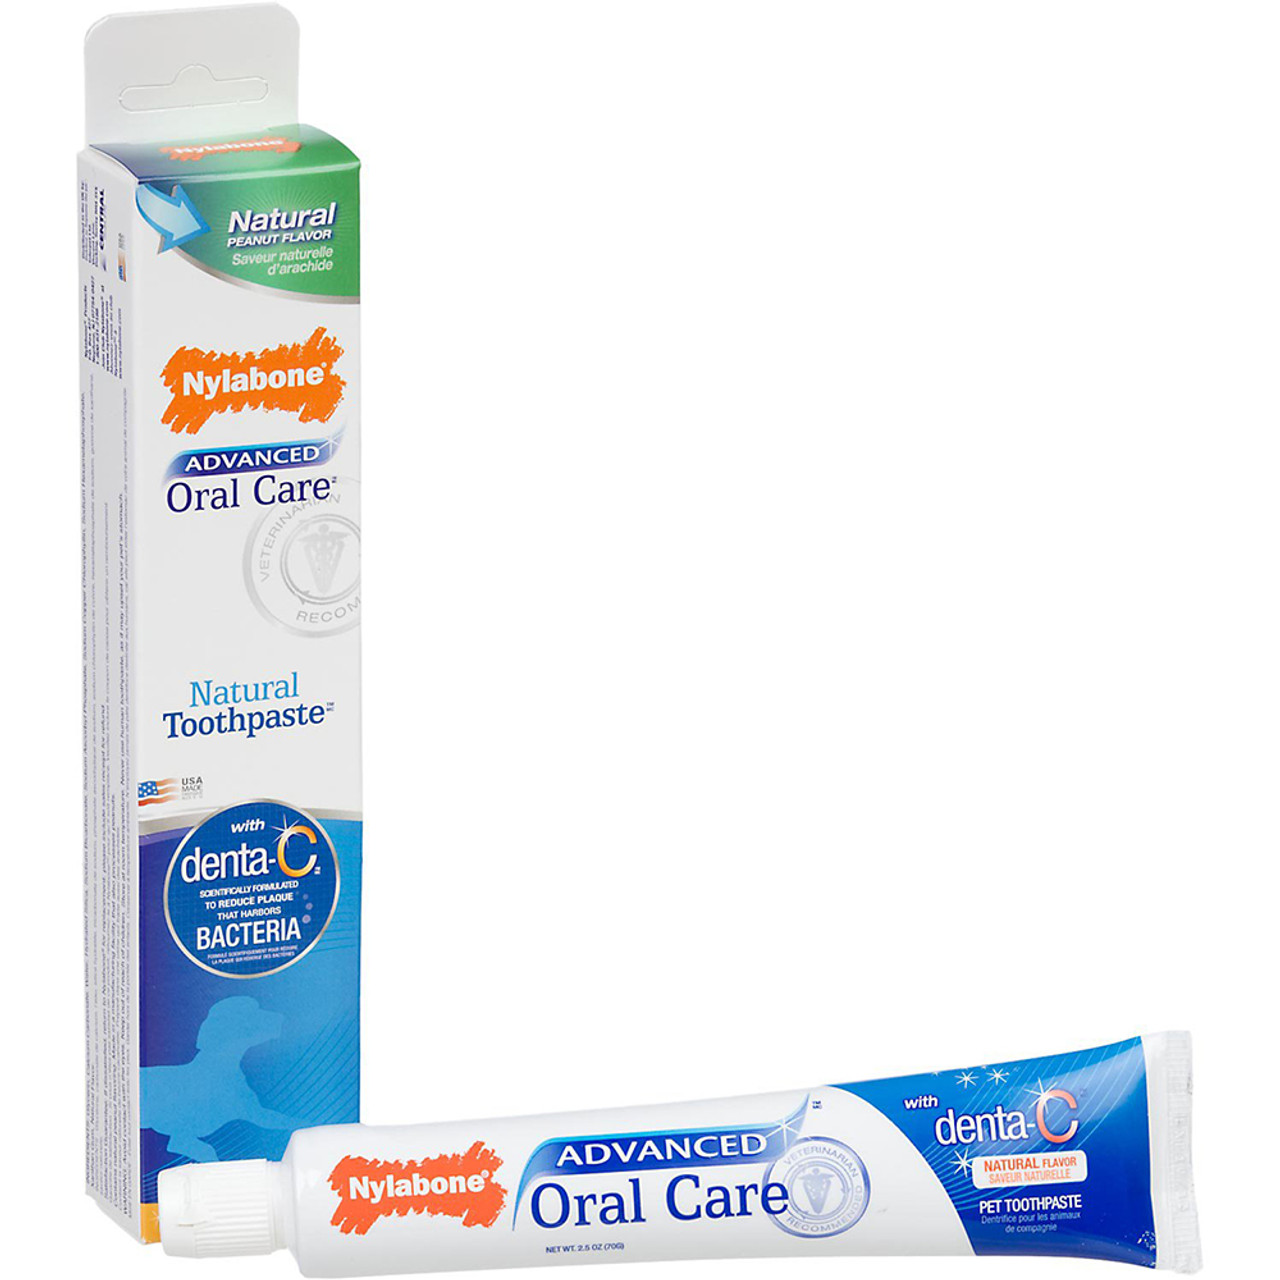 Nylabone Advanced Oral Care Natural Toothpaste for Dogs